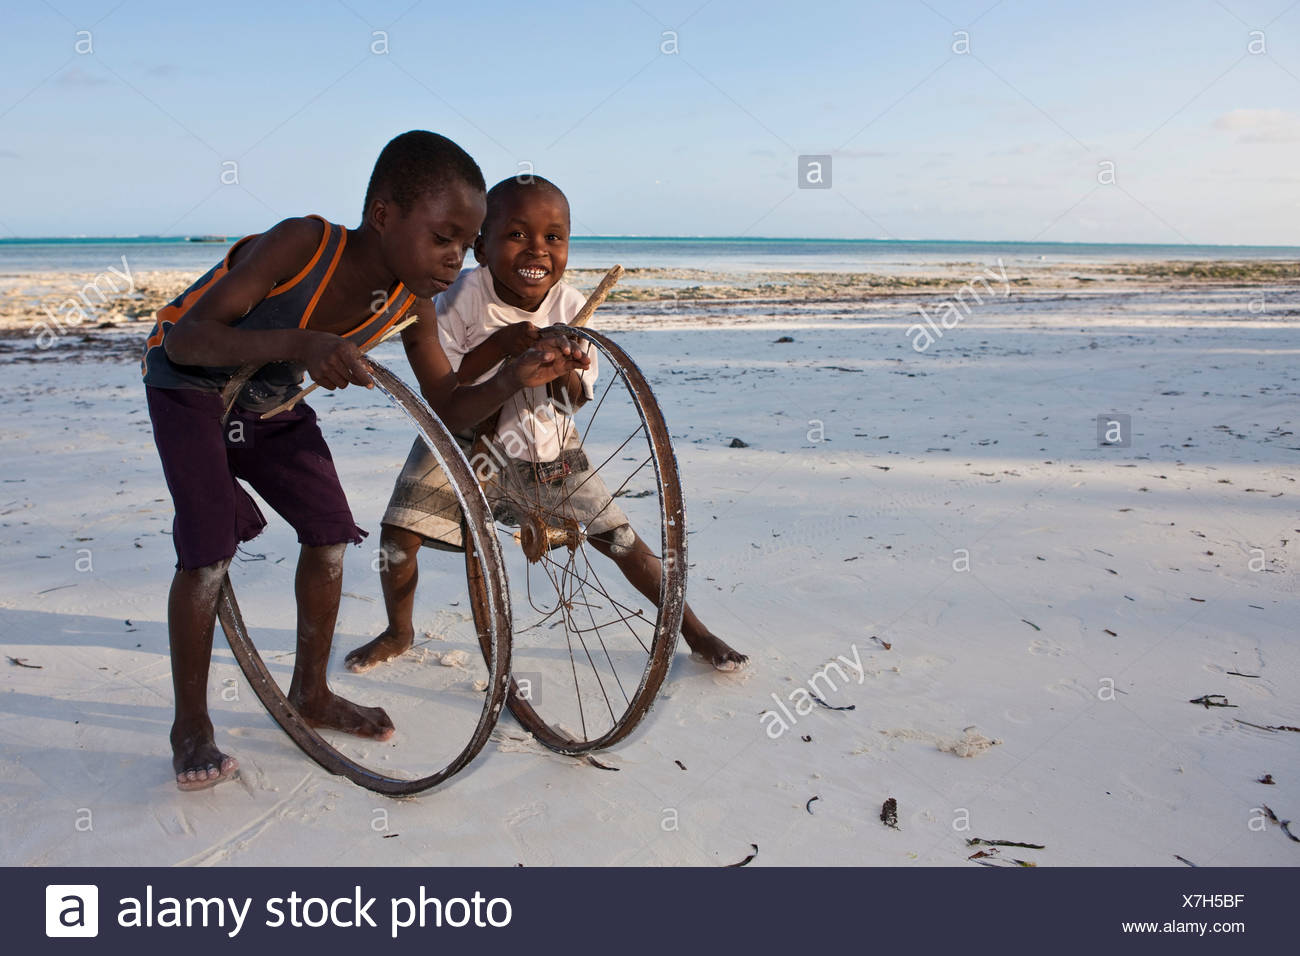 Children play with old bicycle wheels on the beach of Pingwe, Zanzibar, Tanzania, Africa - Stock Image